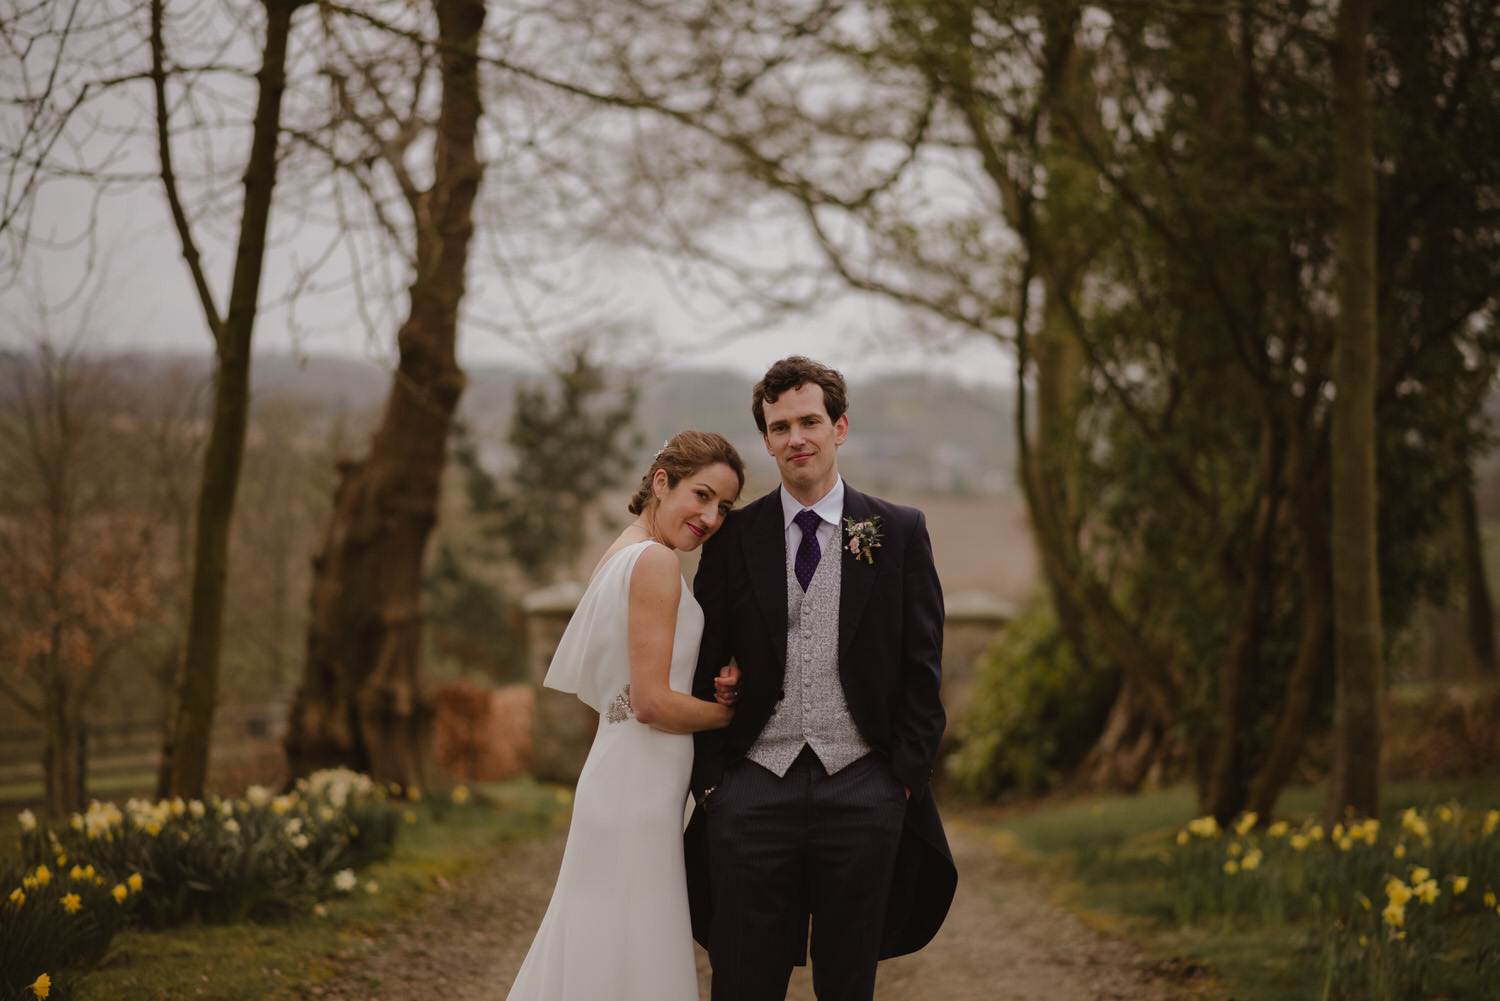 Tullyveery House Wedding Photography | M&C-346.jpg